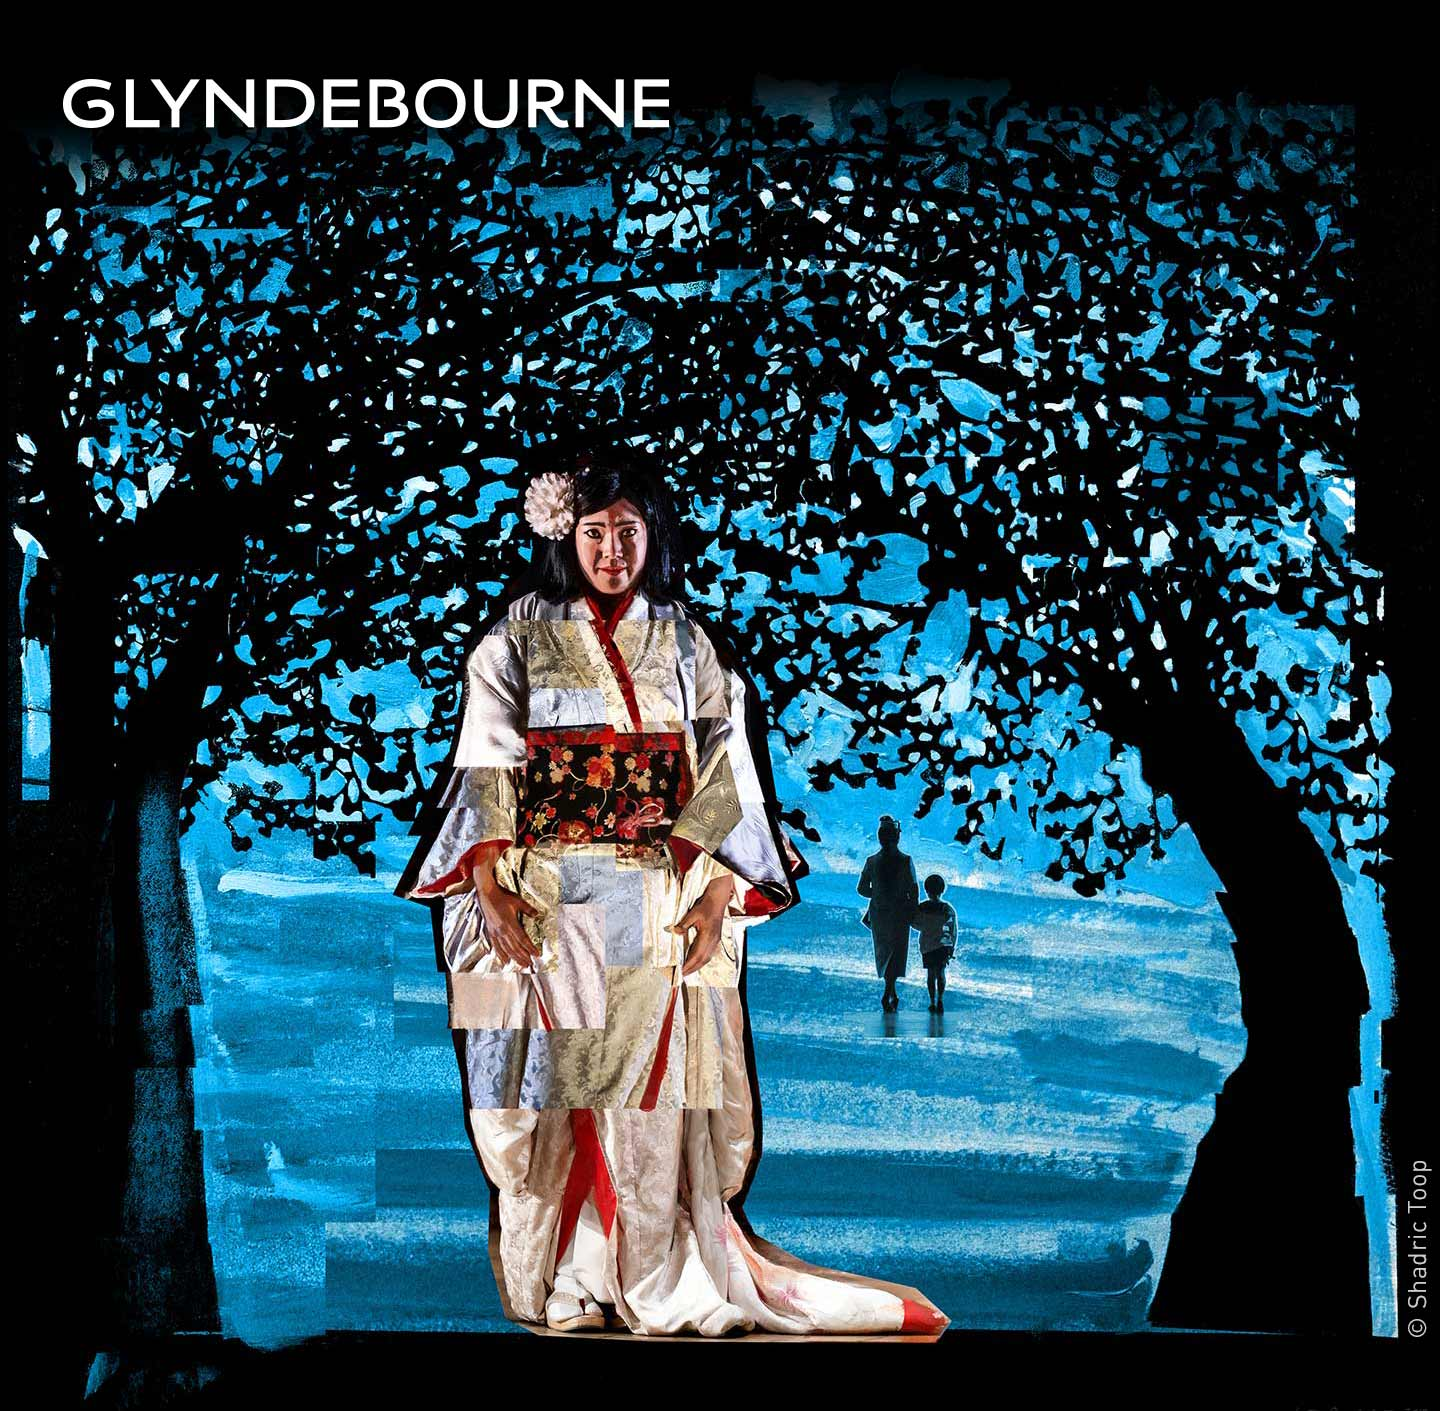 Glyndebourne Festival 2018 featuring characters from the opera Madama Butterfly - painted collage illustration by Shadric Toop